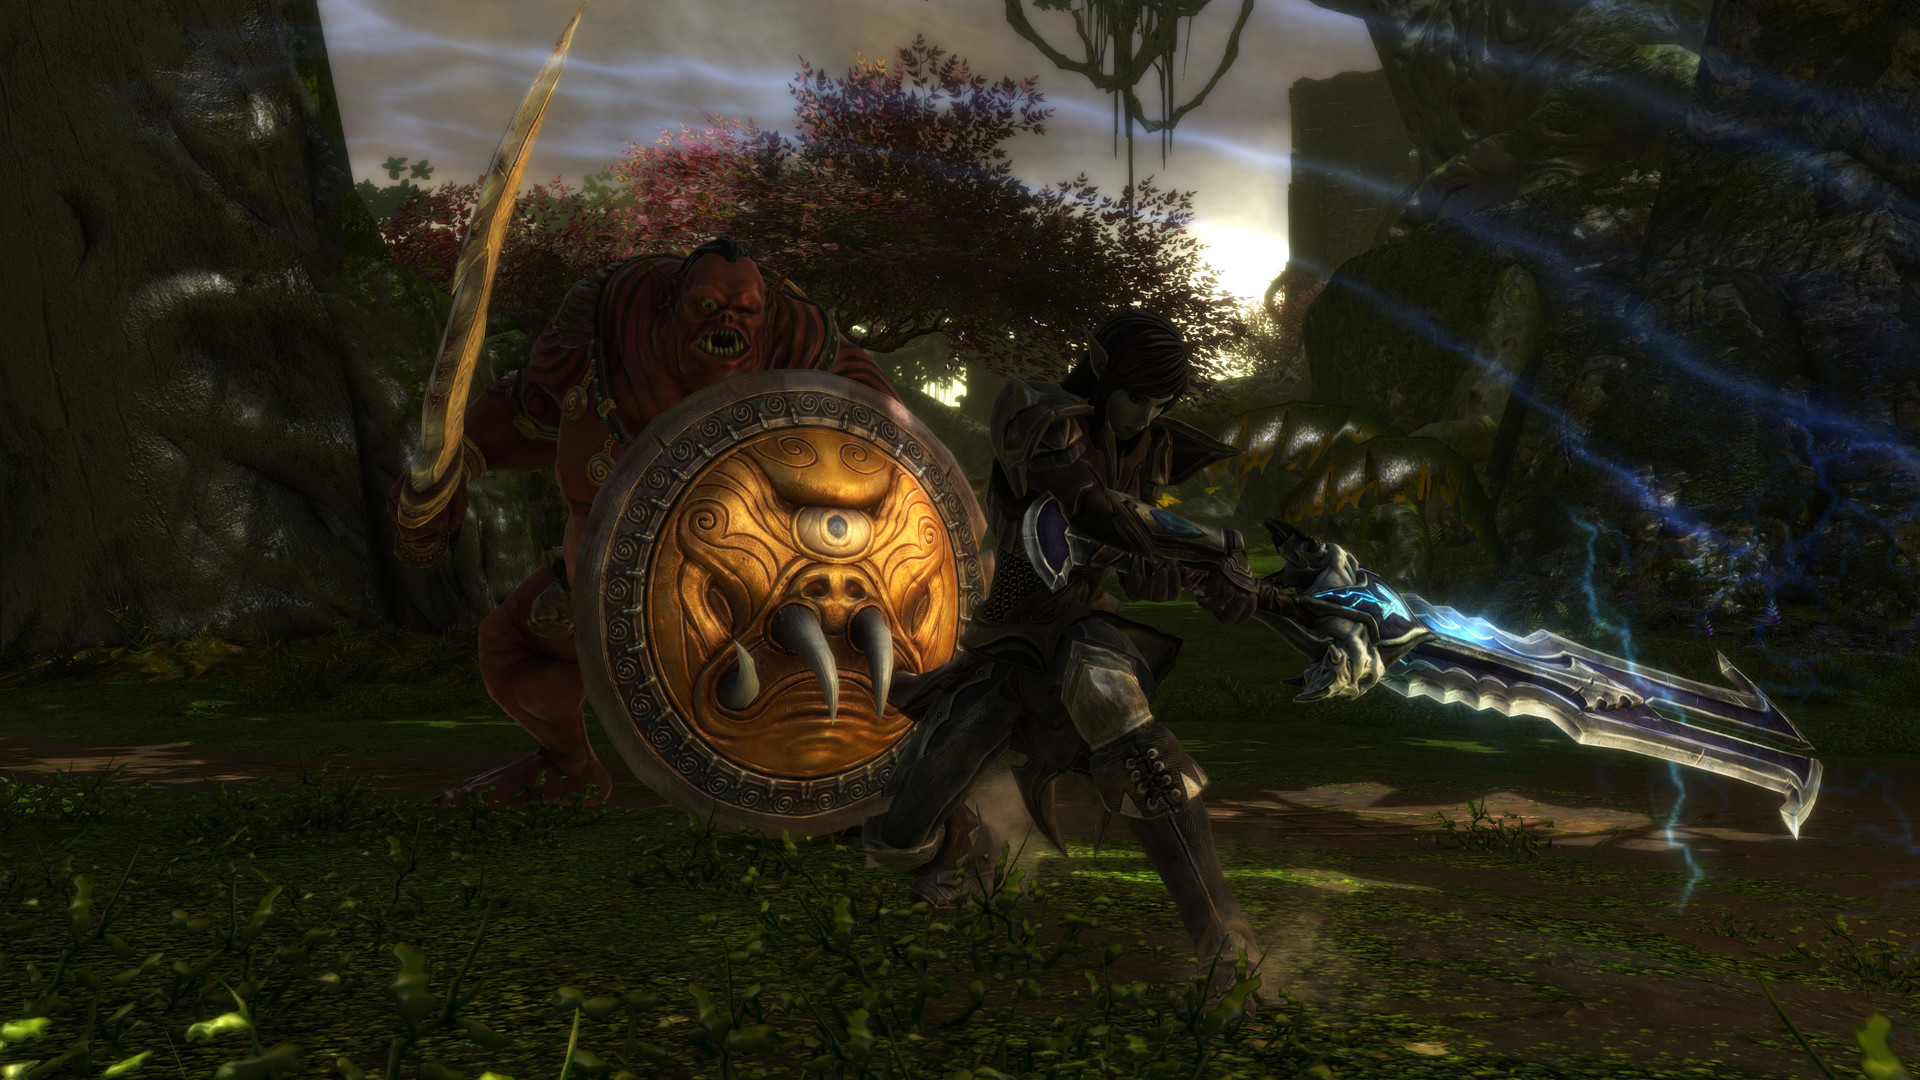 Kingdoms of Amalur Re-Reckoning PC requirements minimum recommended